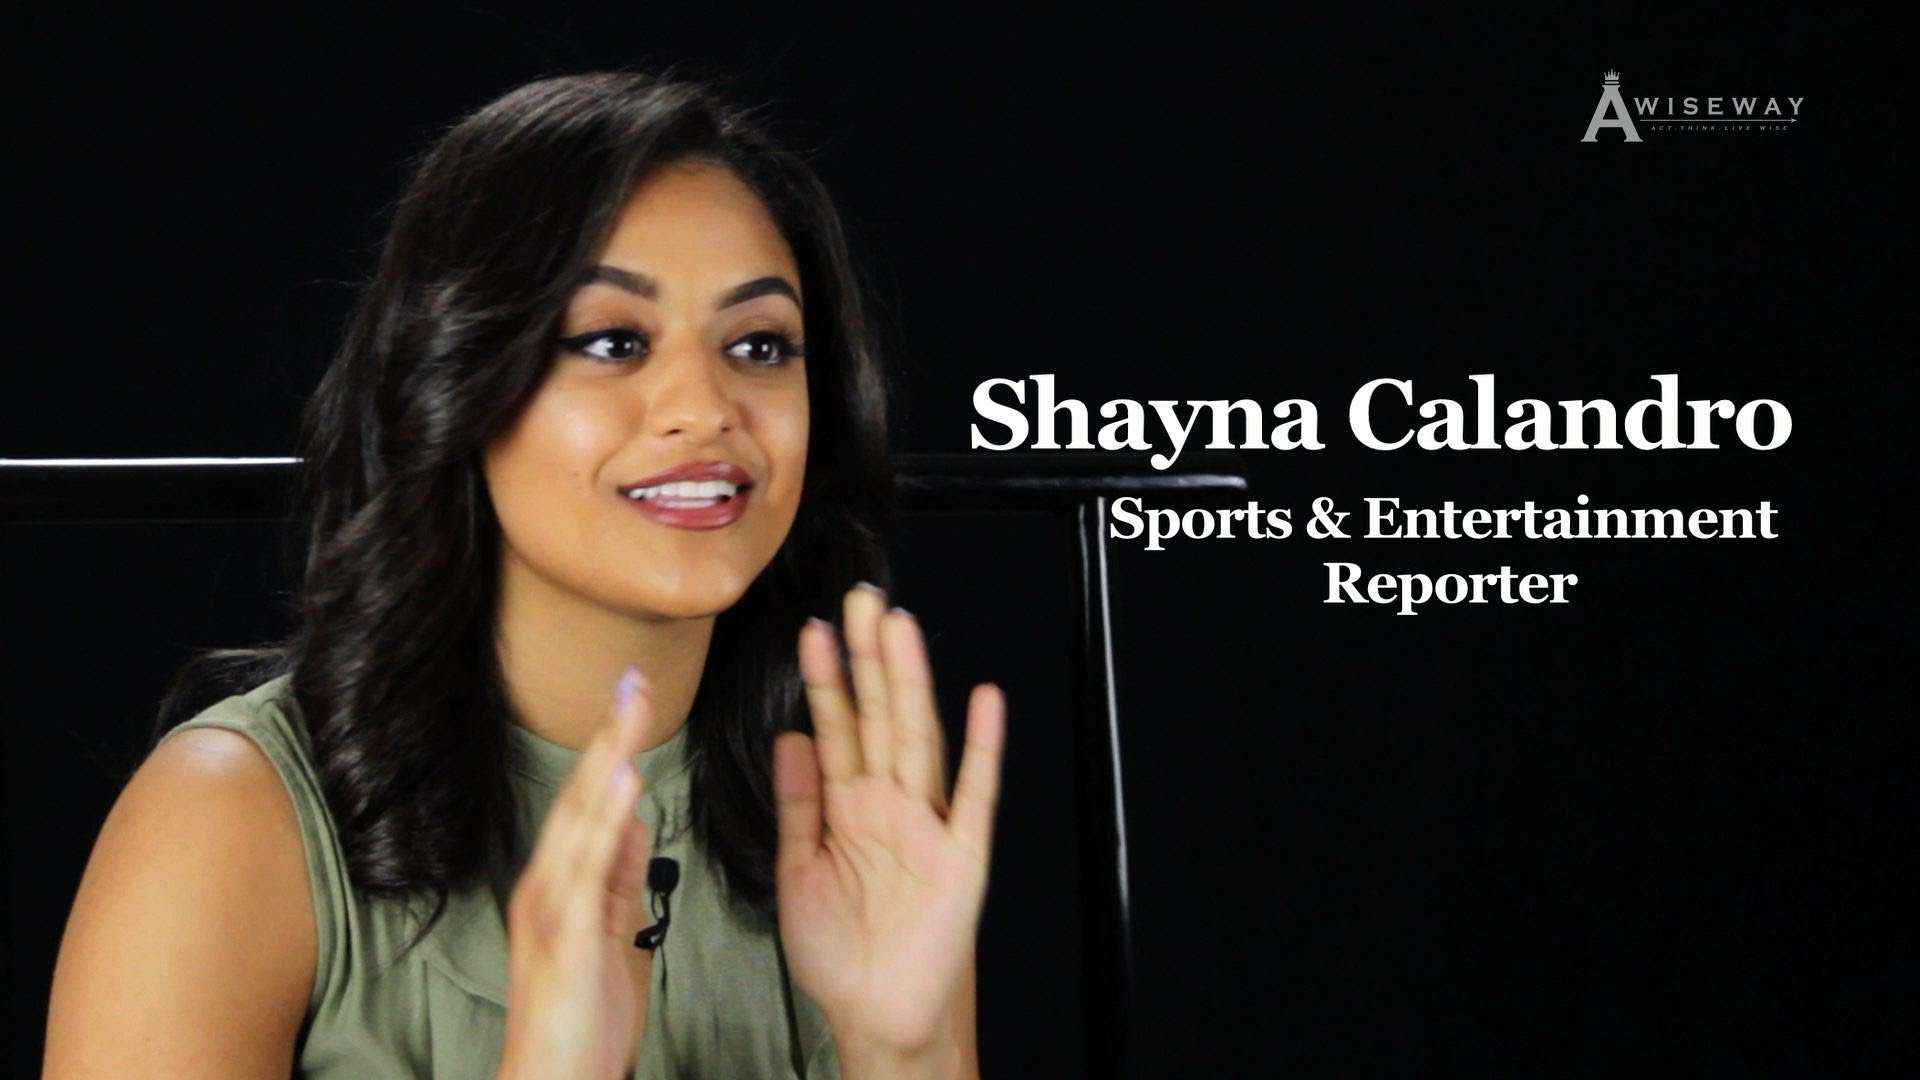 Female Reporter Explains How to Interview Athletes in the Locker Room